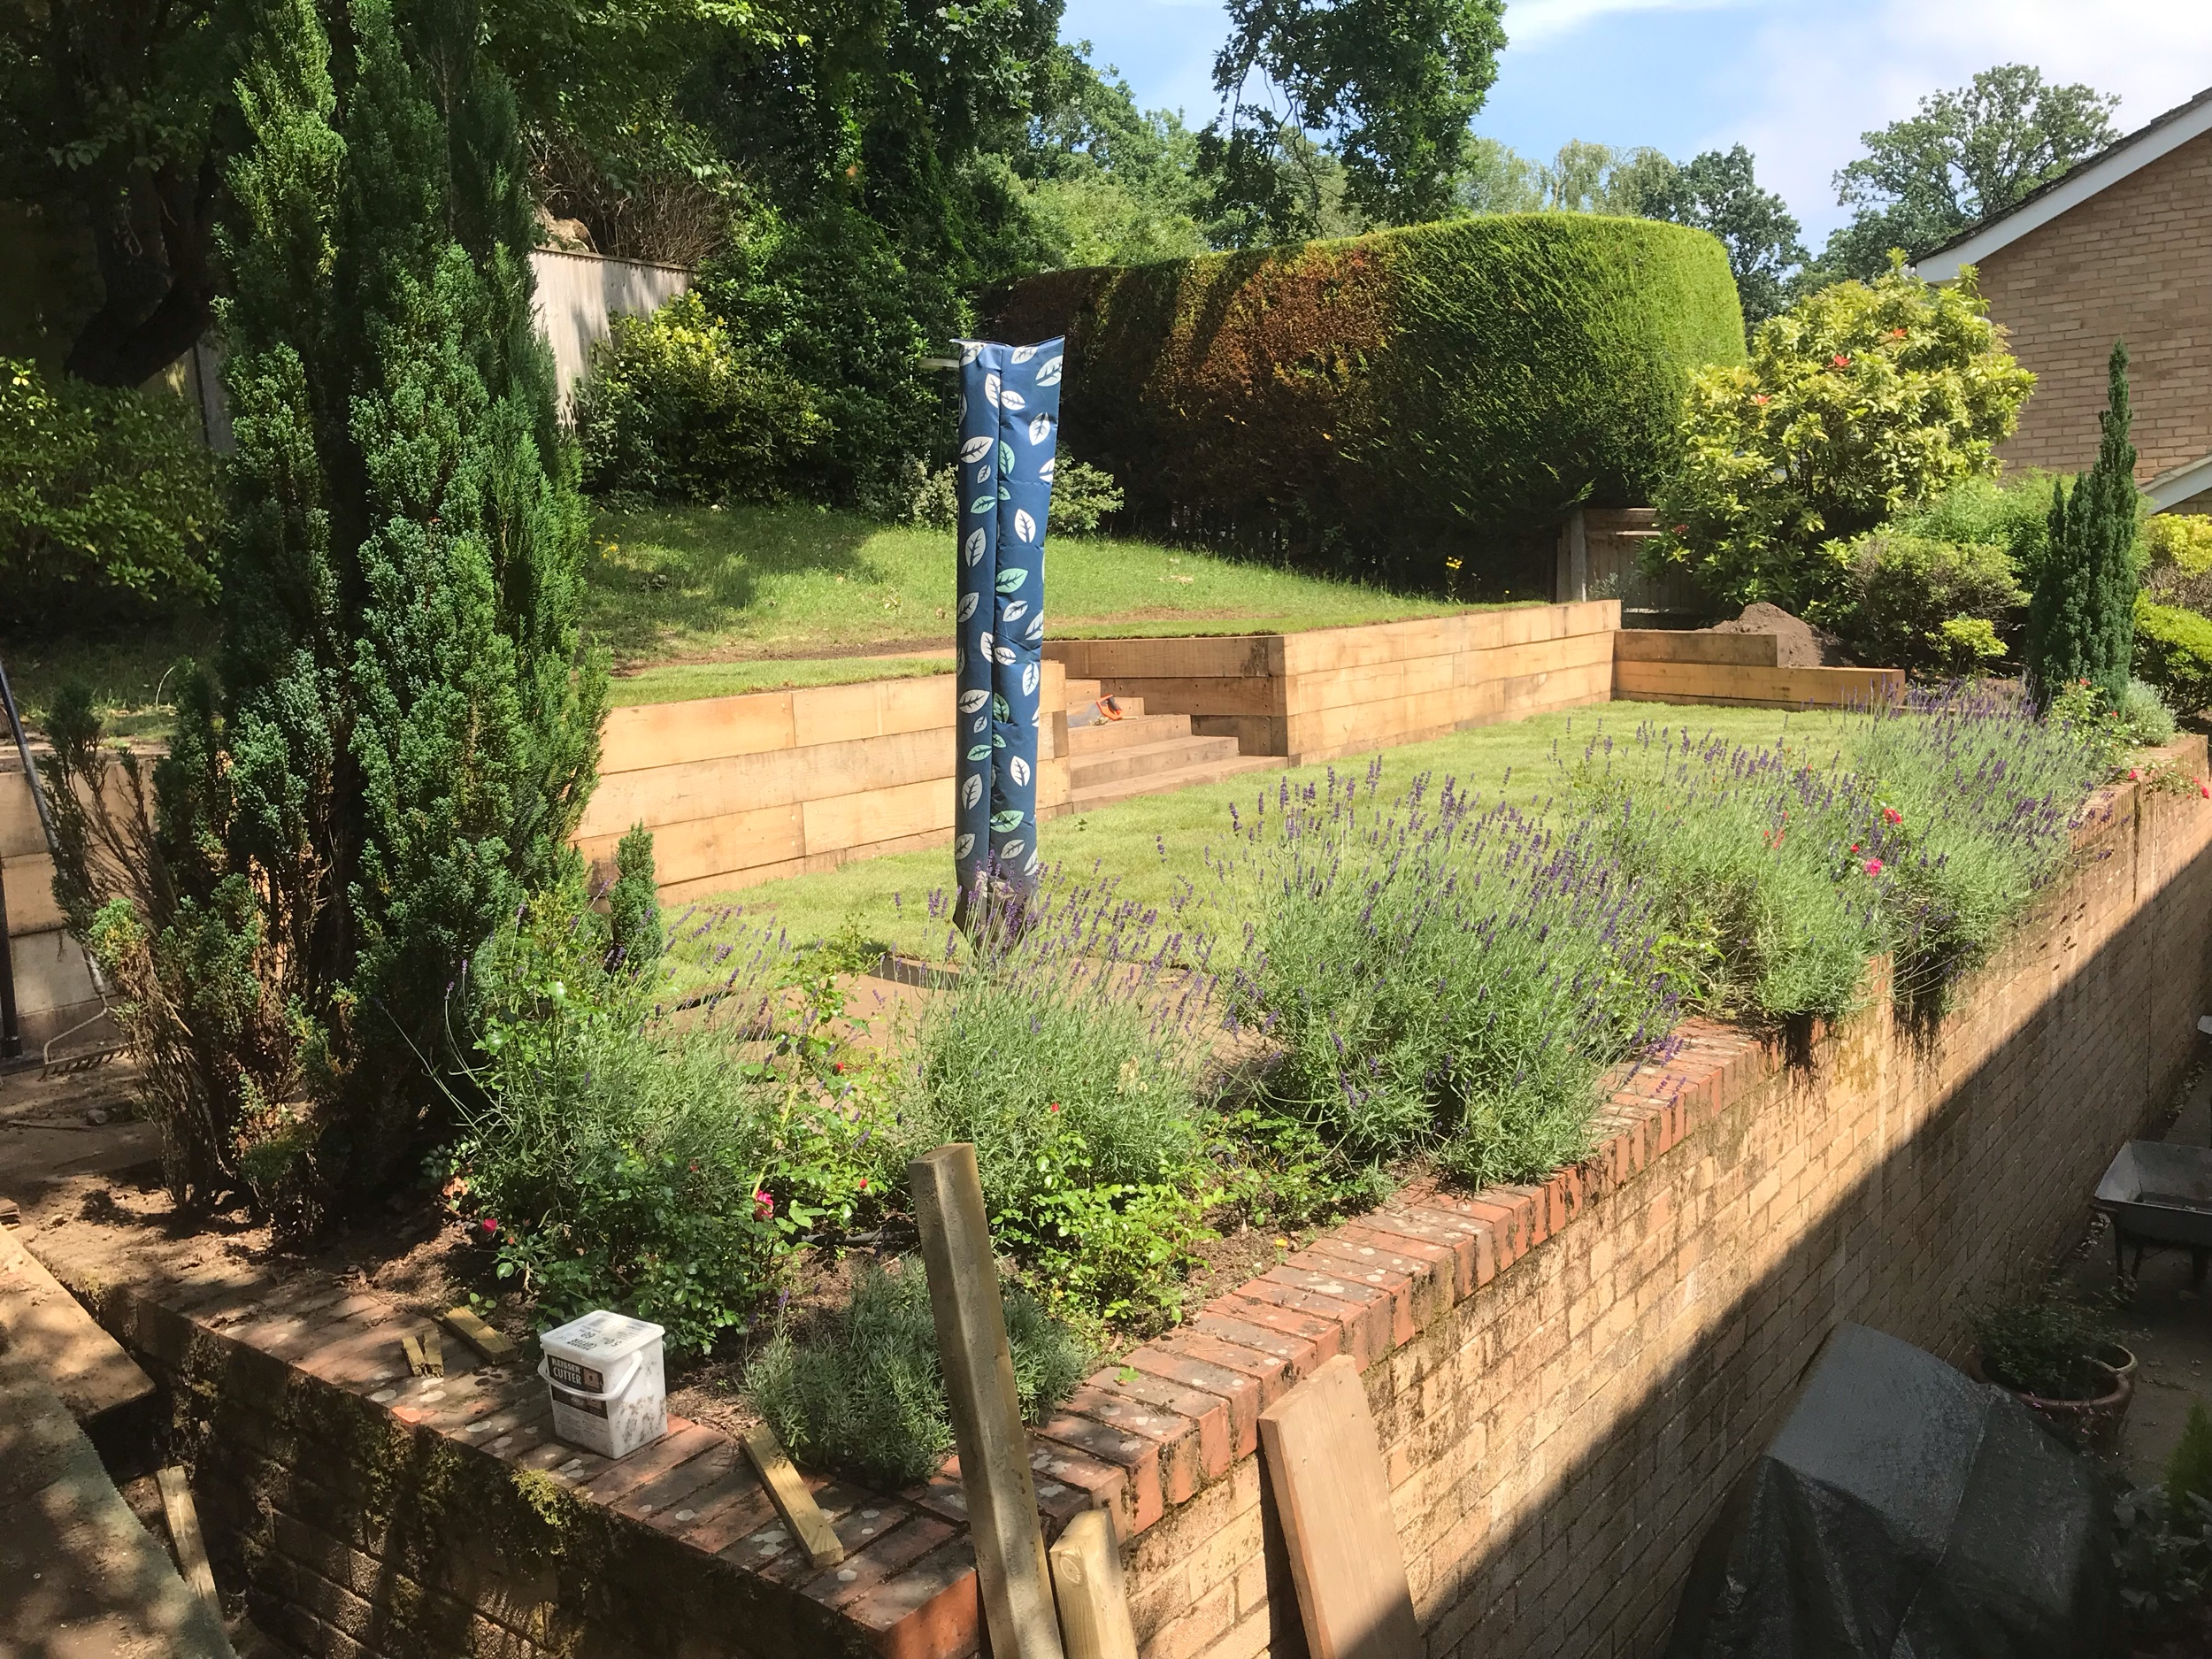 New sleeper retaining wall creating a usable level lawn from an unsightly bank.